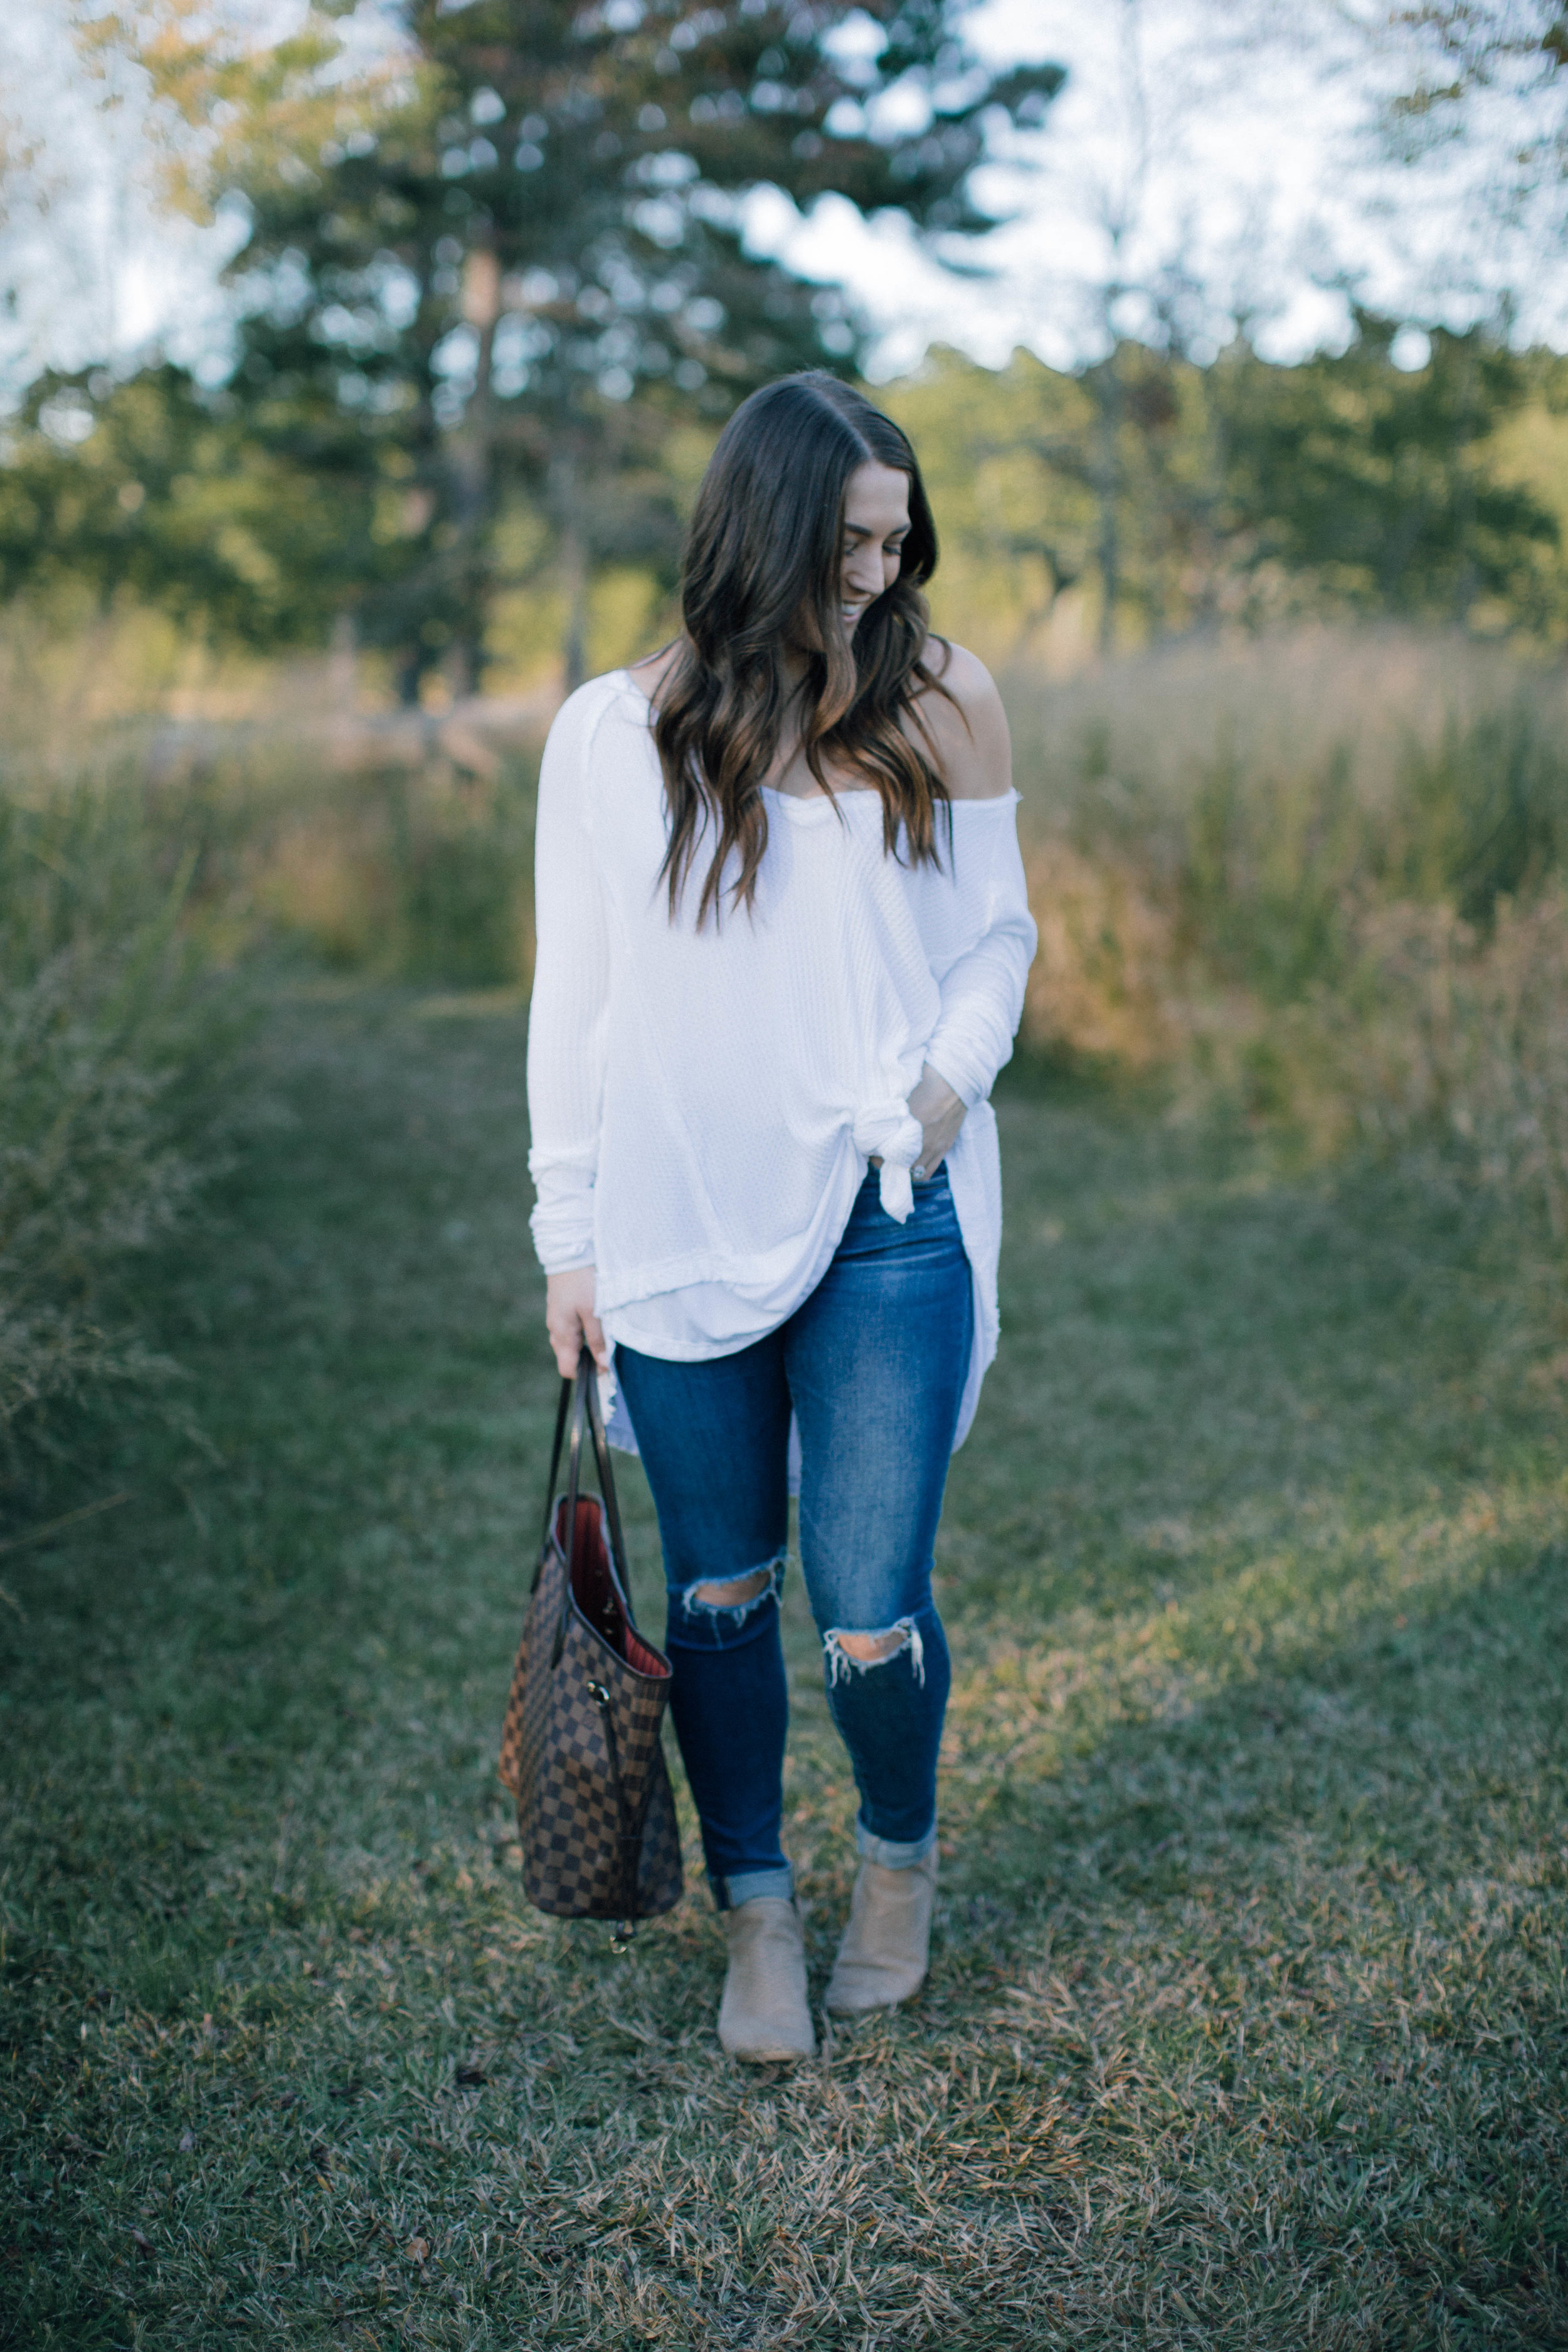 fall fashion / fall outfit idea / fall outfit inspiration / free people white thermal / ag jeans